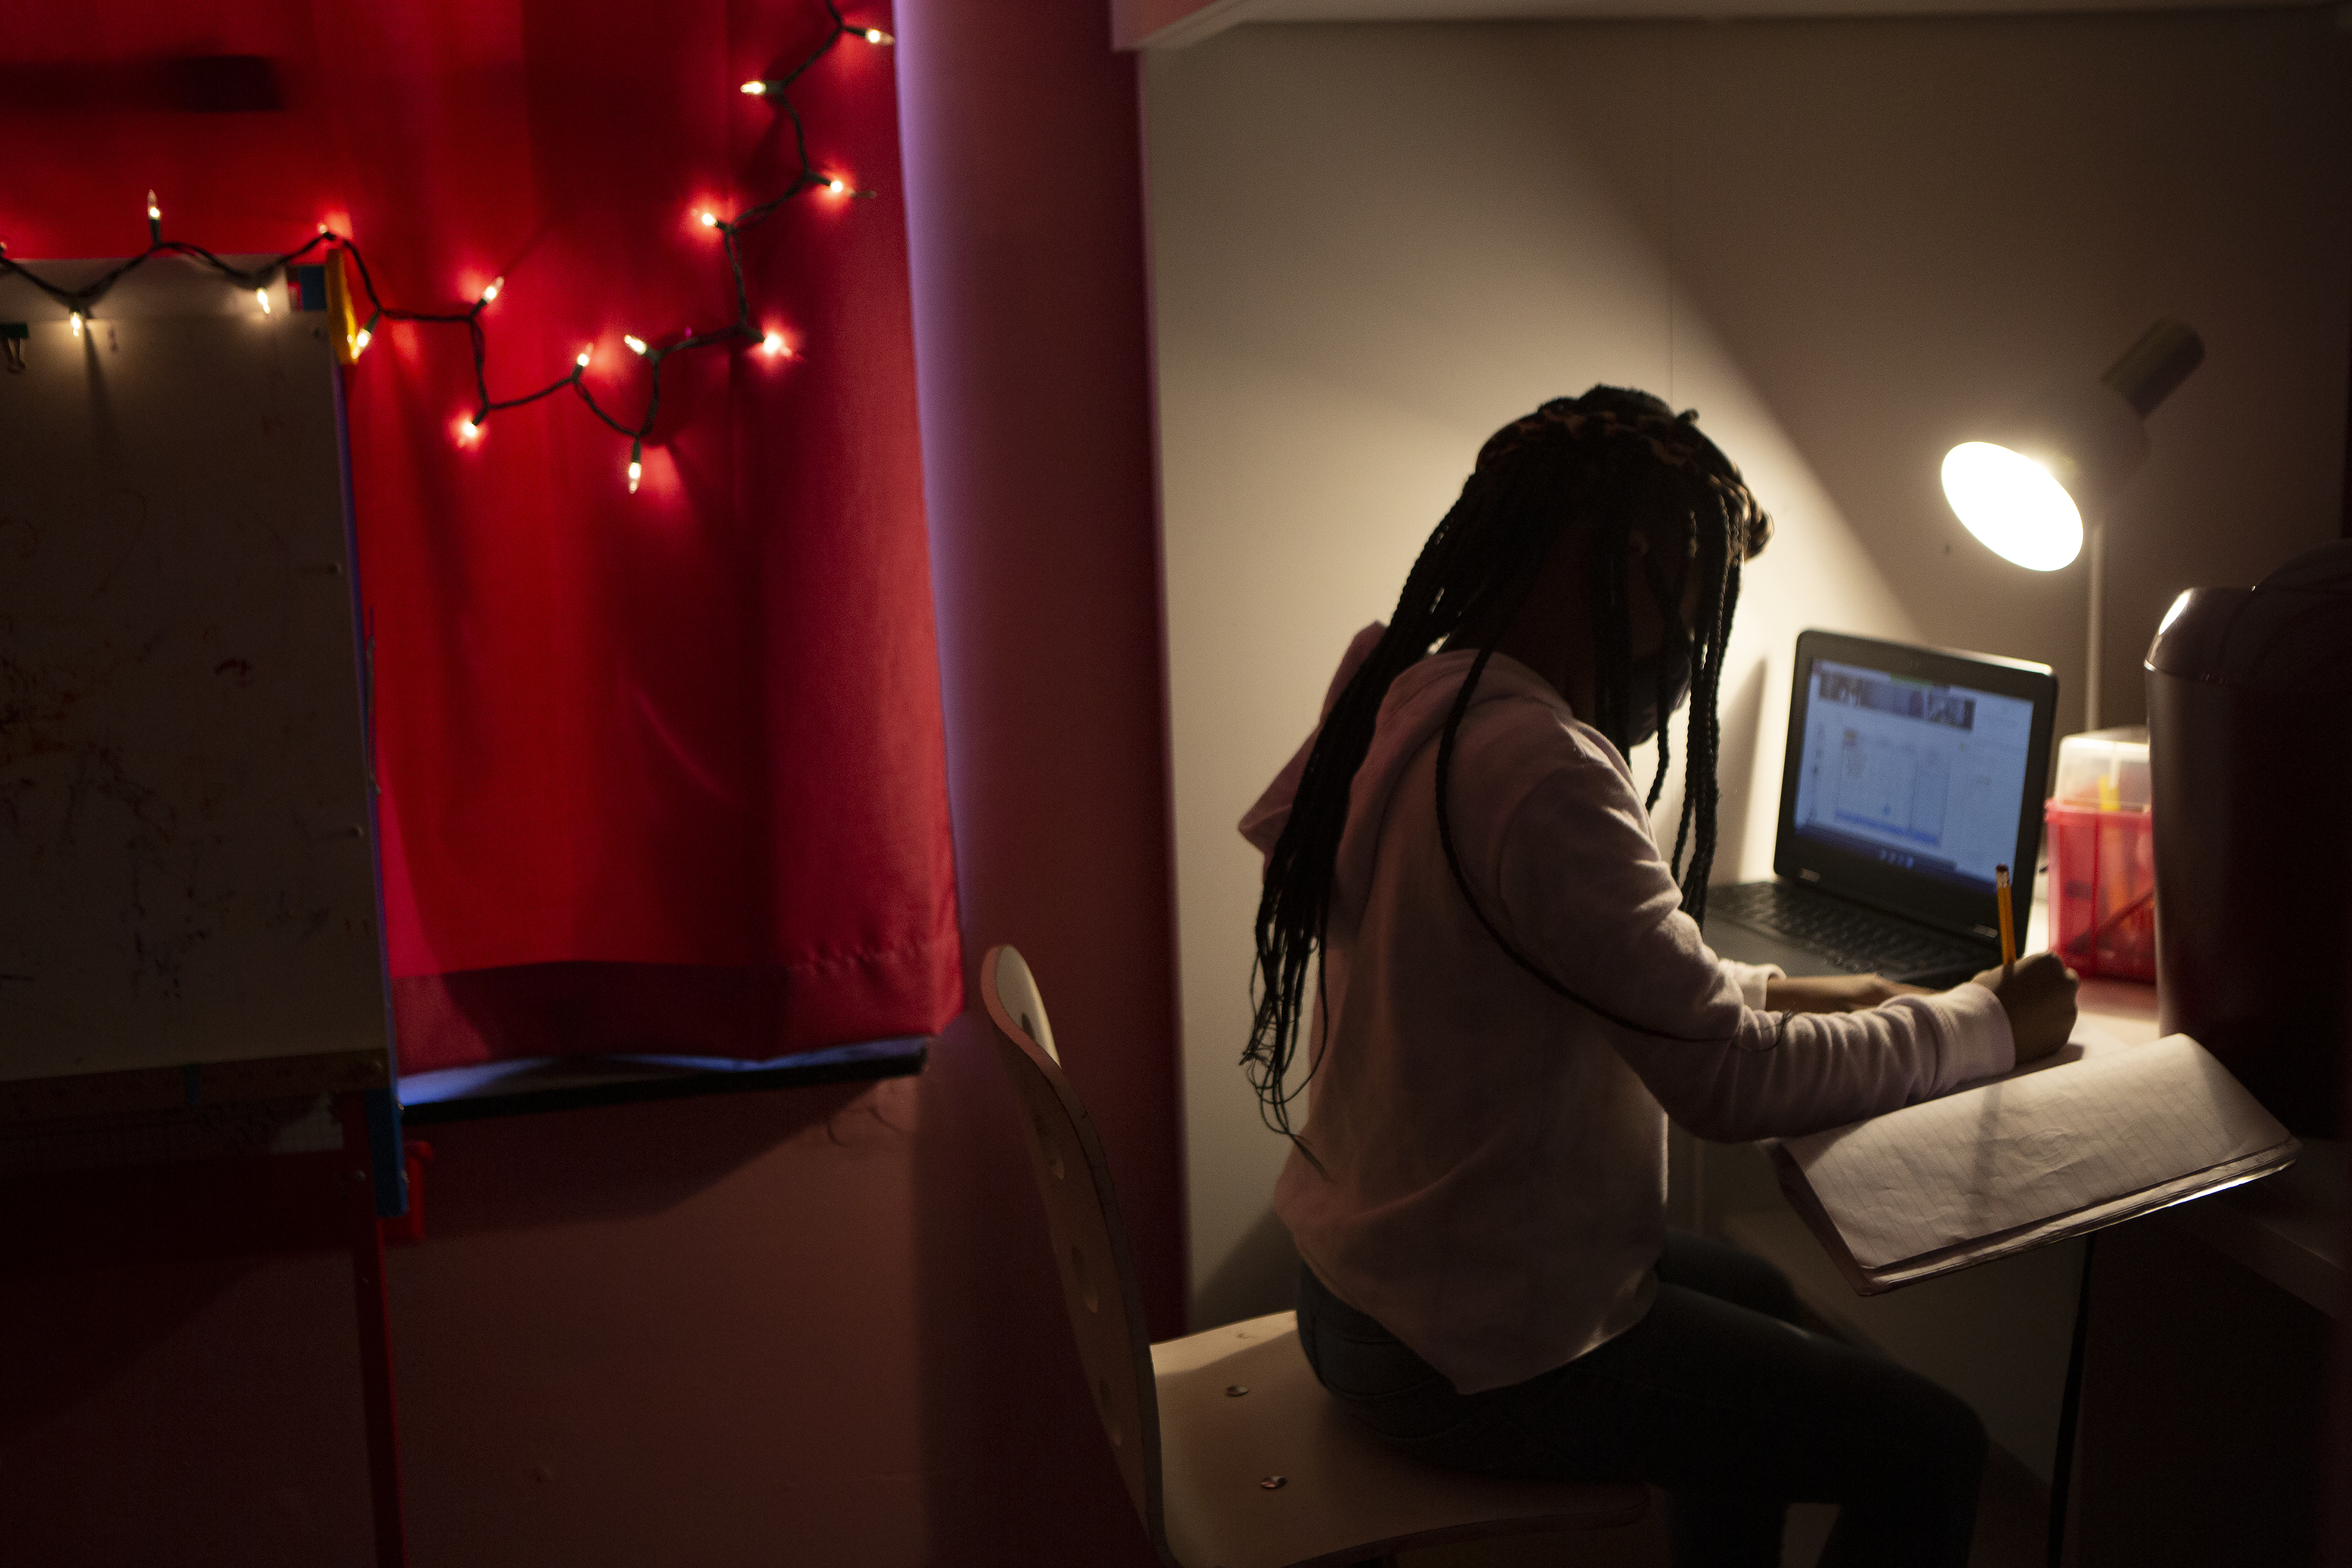 A young girl in a darkened room works in the light of a desk lamp. She is writing in a notebook. A laptop computer is open on her left. Behind her a string of Christmas lights hang over a red curtain.